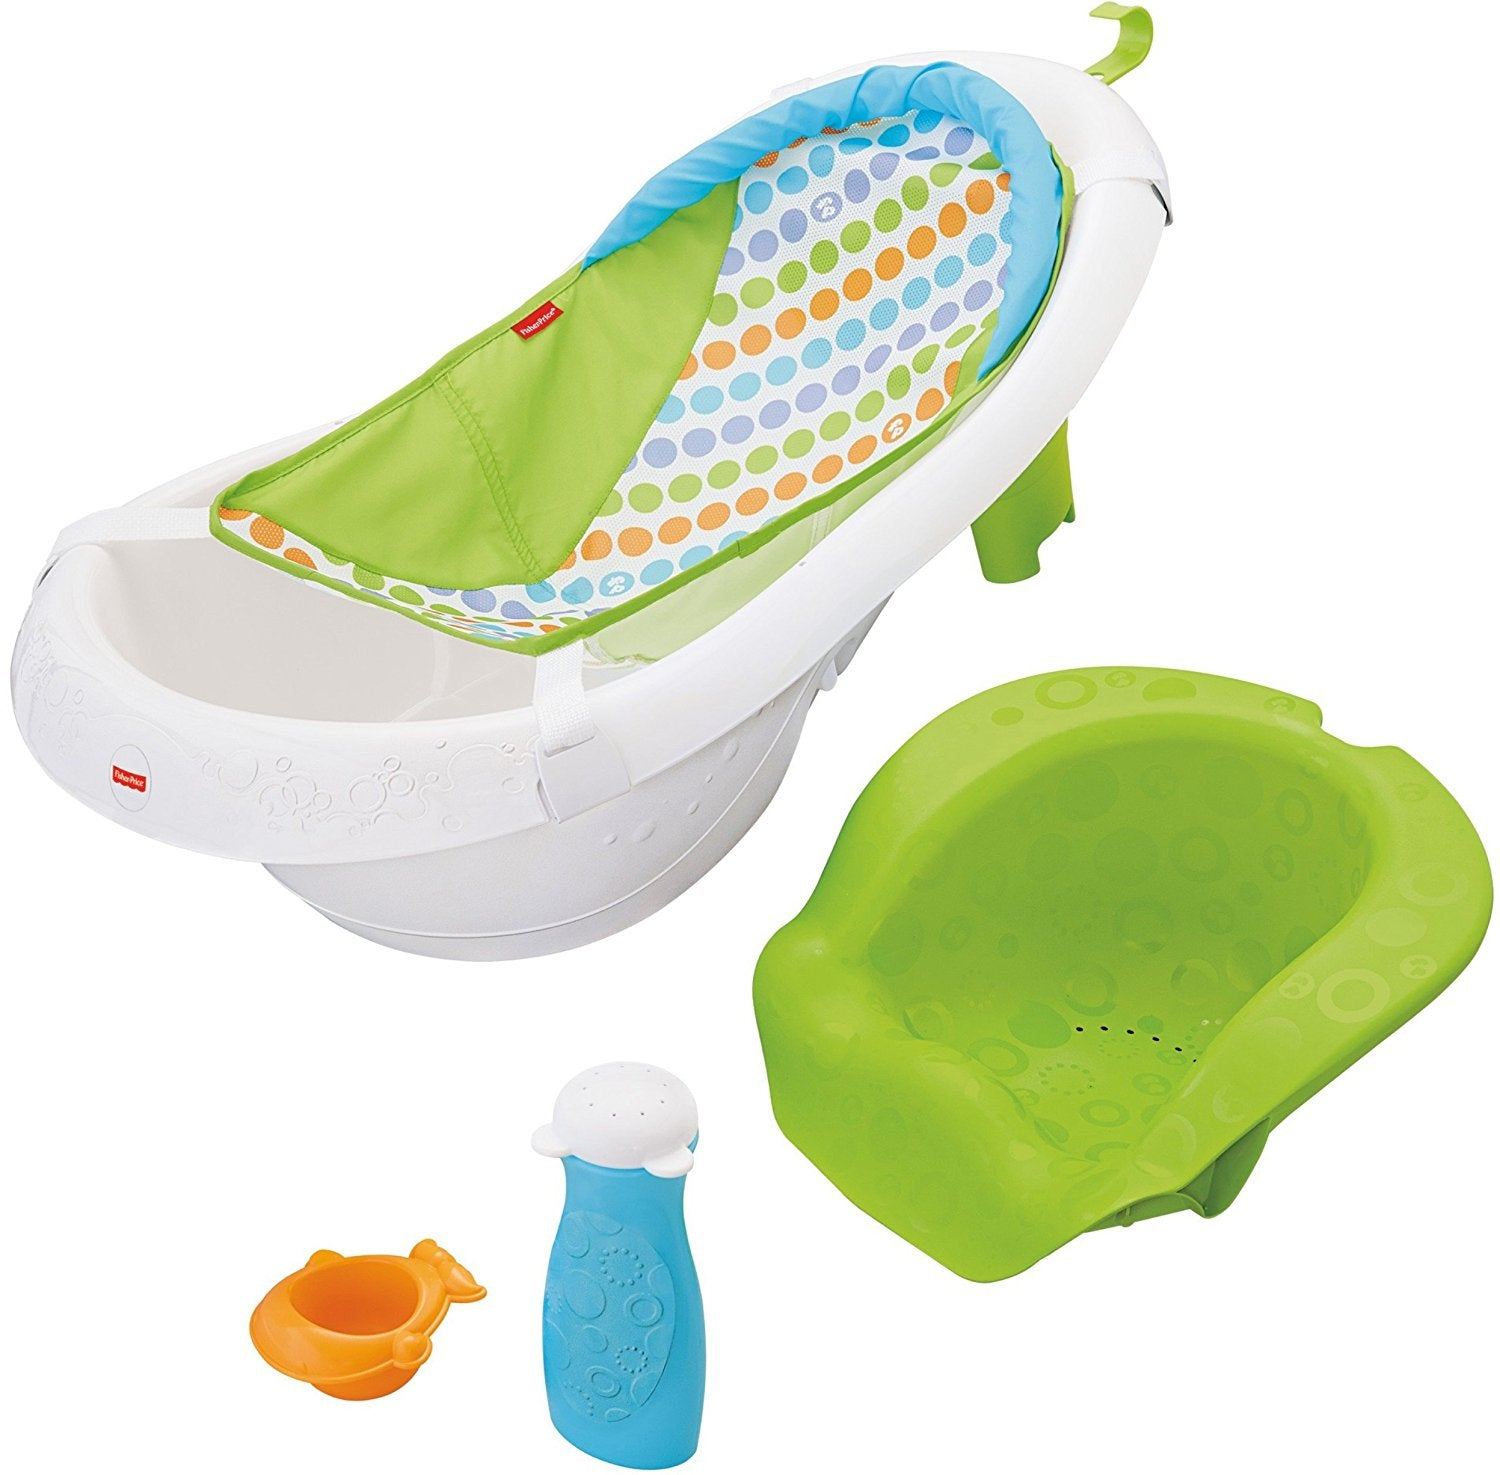 Fisher Price 4-in-1 Sling n' Seat Tub Green (Wrap Package) CBX23